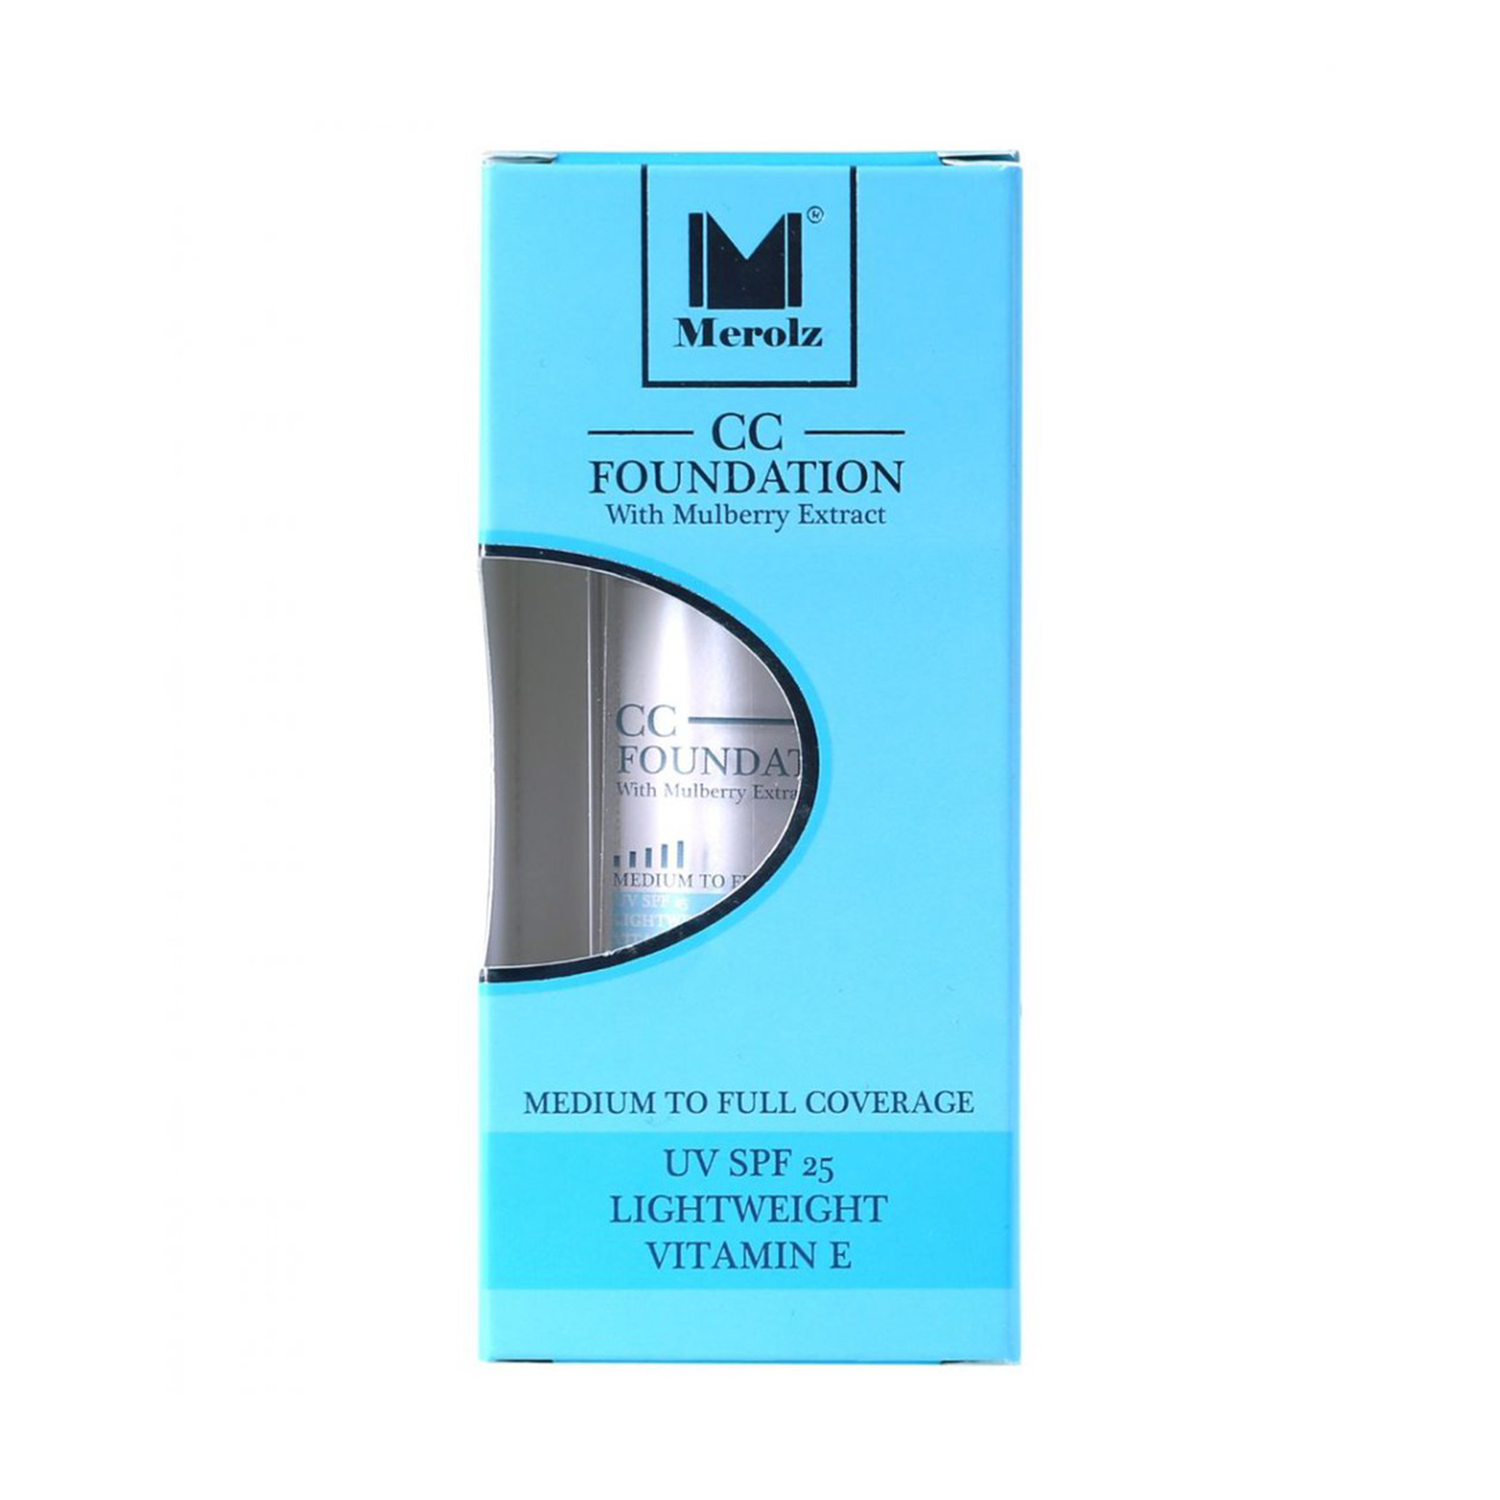 Merolz Cc Foundation With Mulberry Extract - Spf25